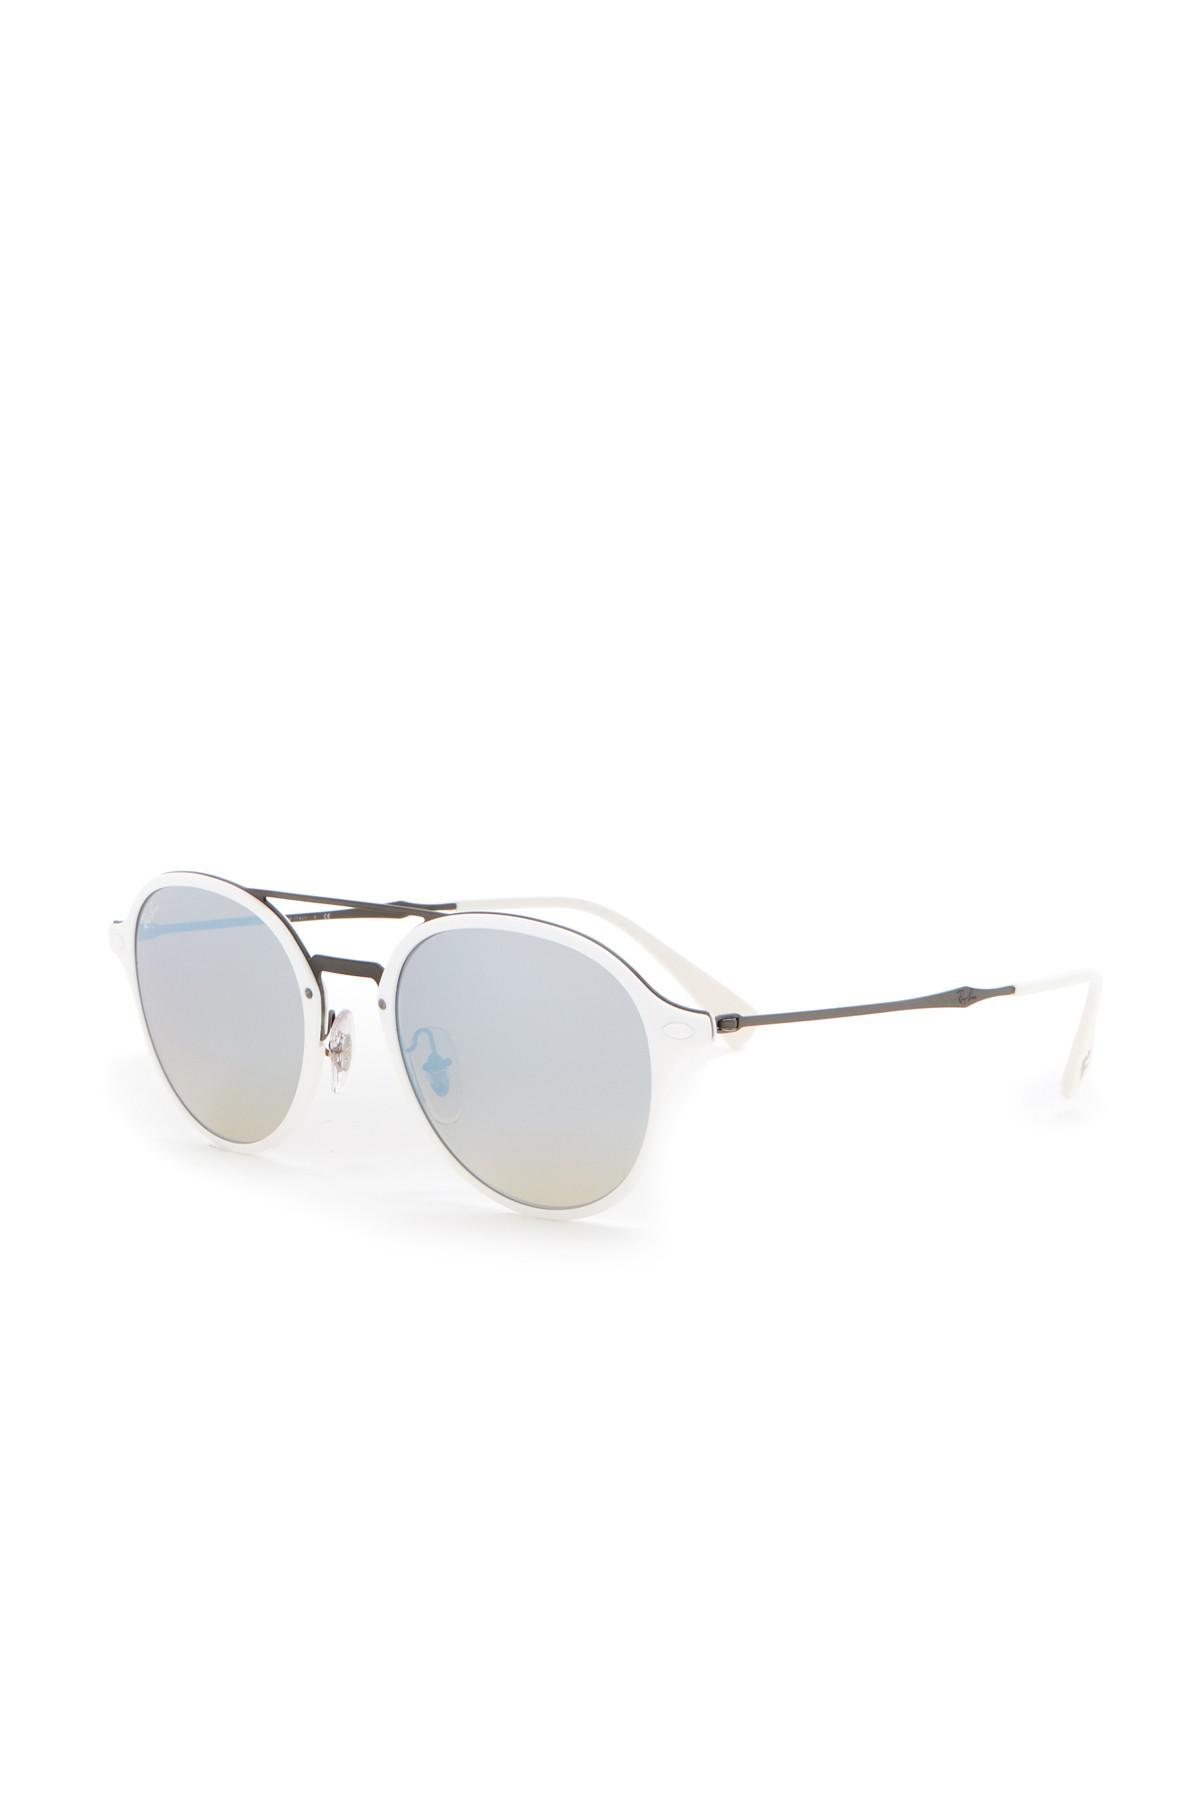 lyst ray ban 51mm round sunglasses in white for men Oakley Radarlock Sunglasses view fullscreen